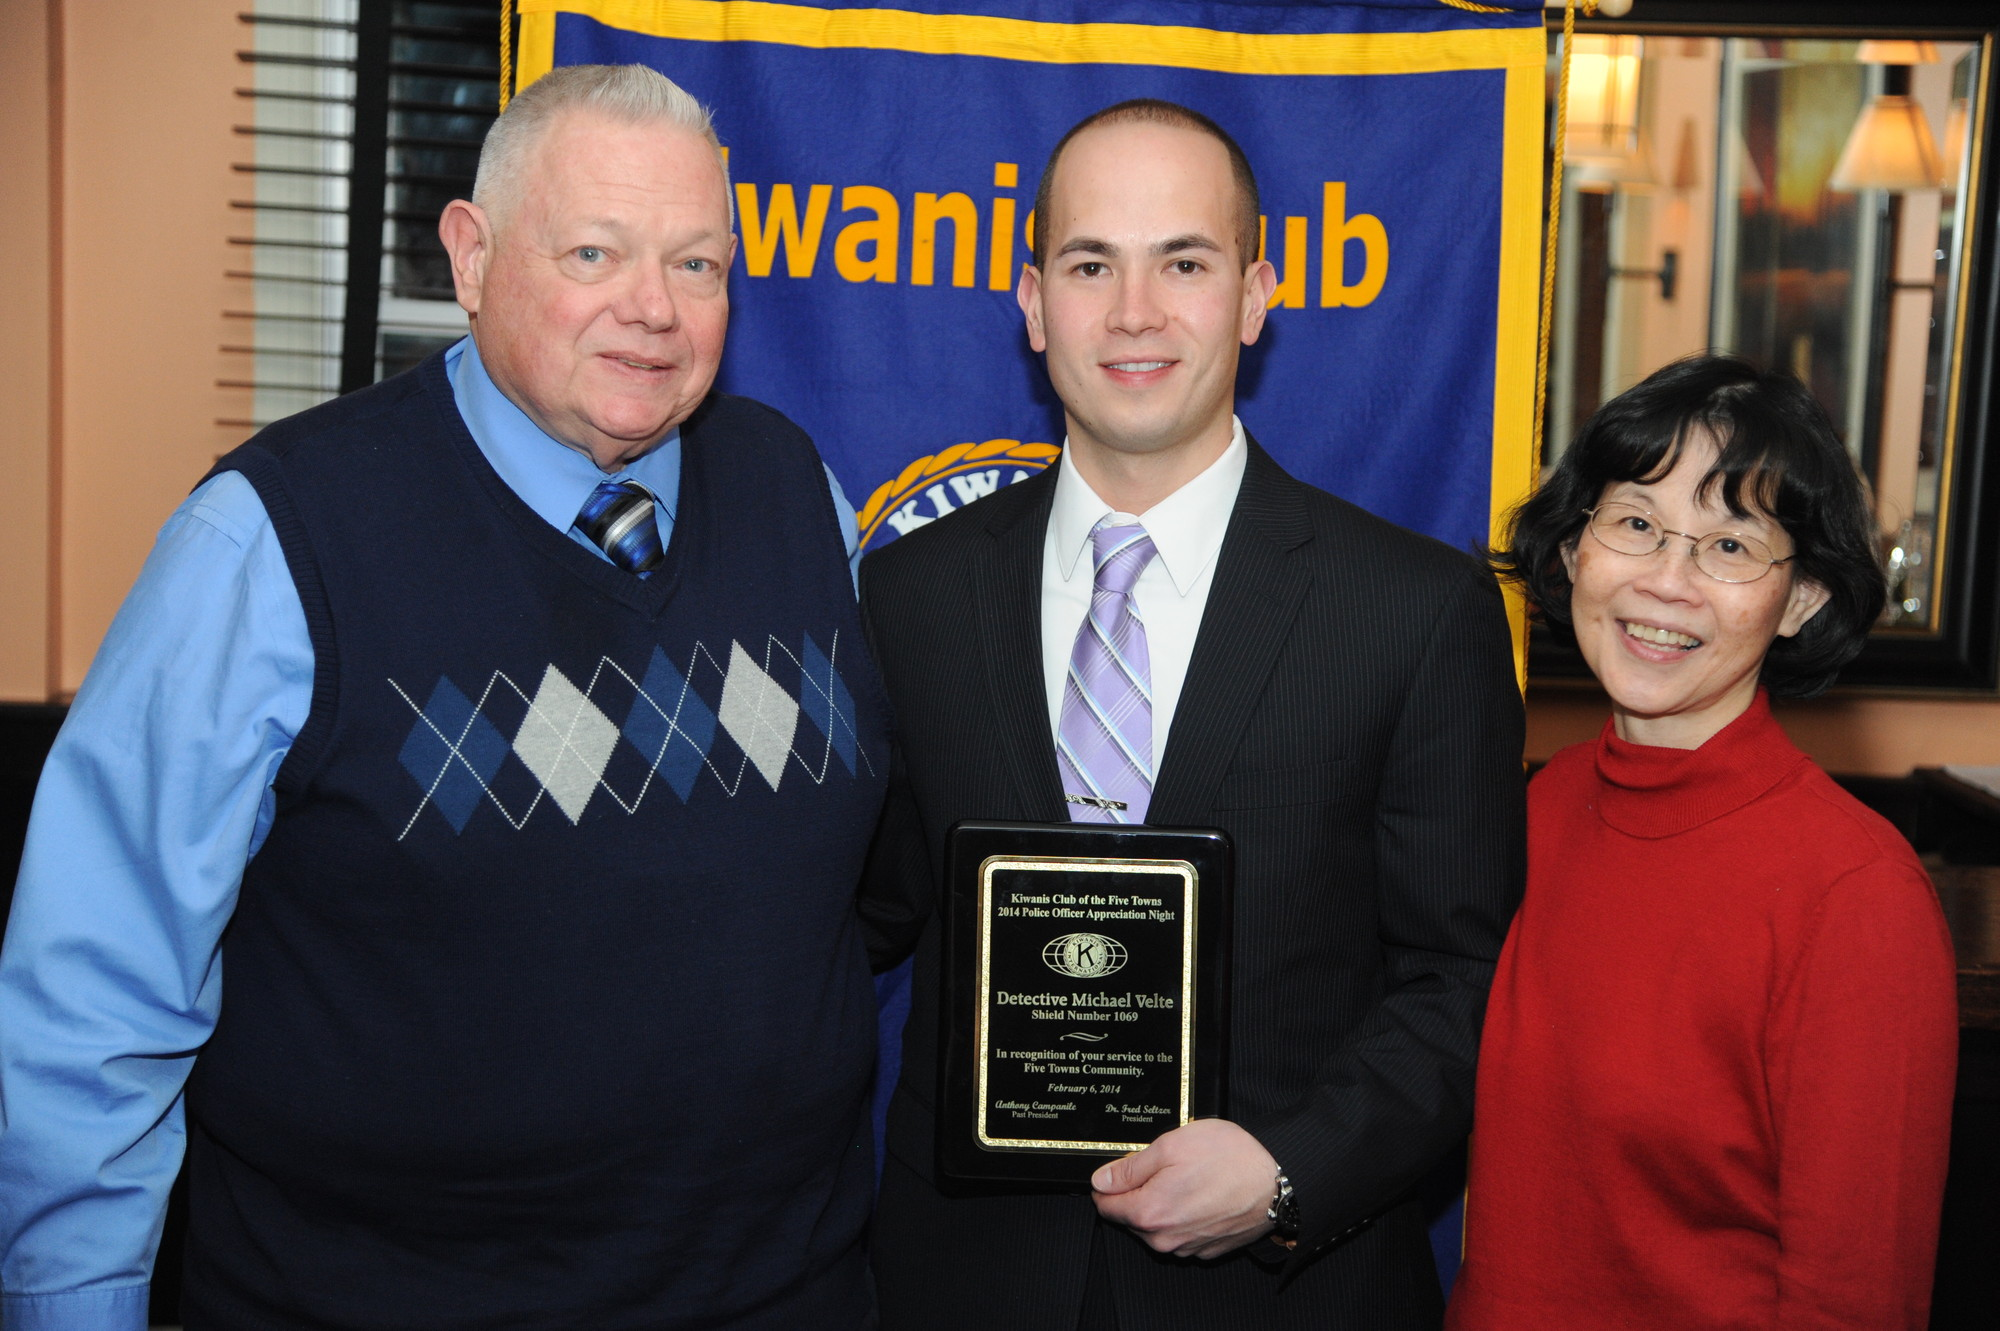 It was a family affair for Det. Michael Velte who was congratulated by his parents, Barry and Patricia.